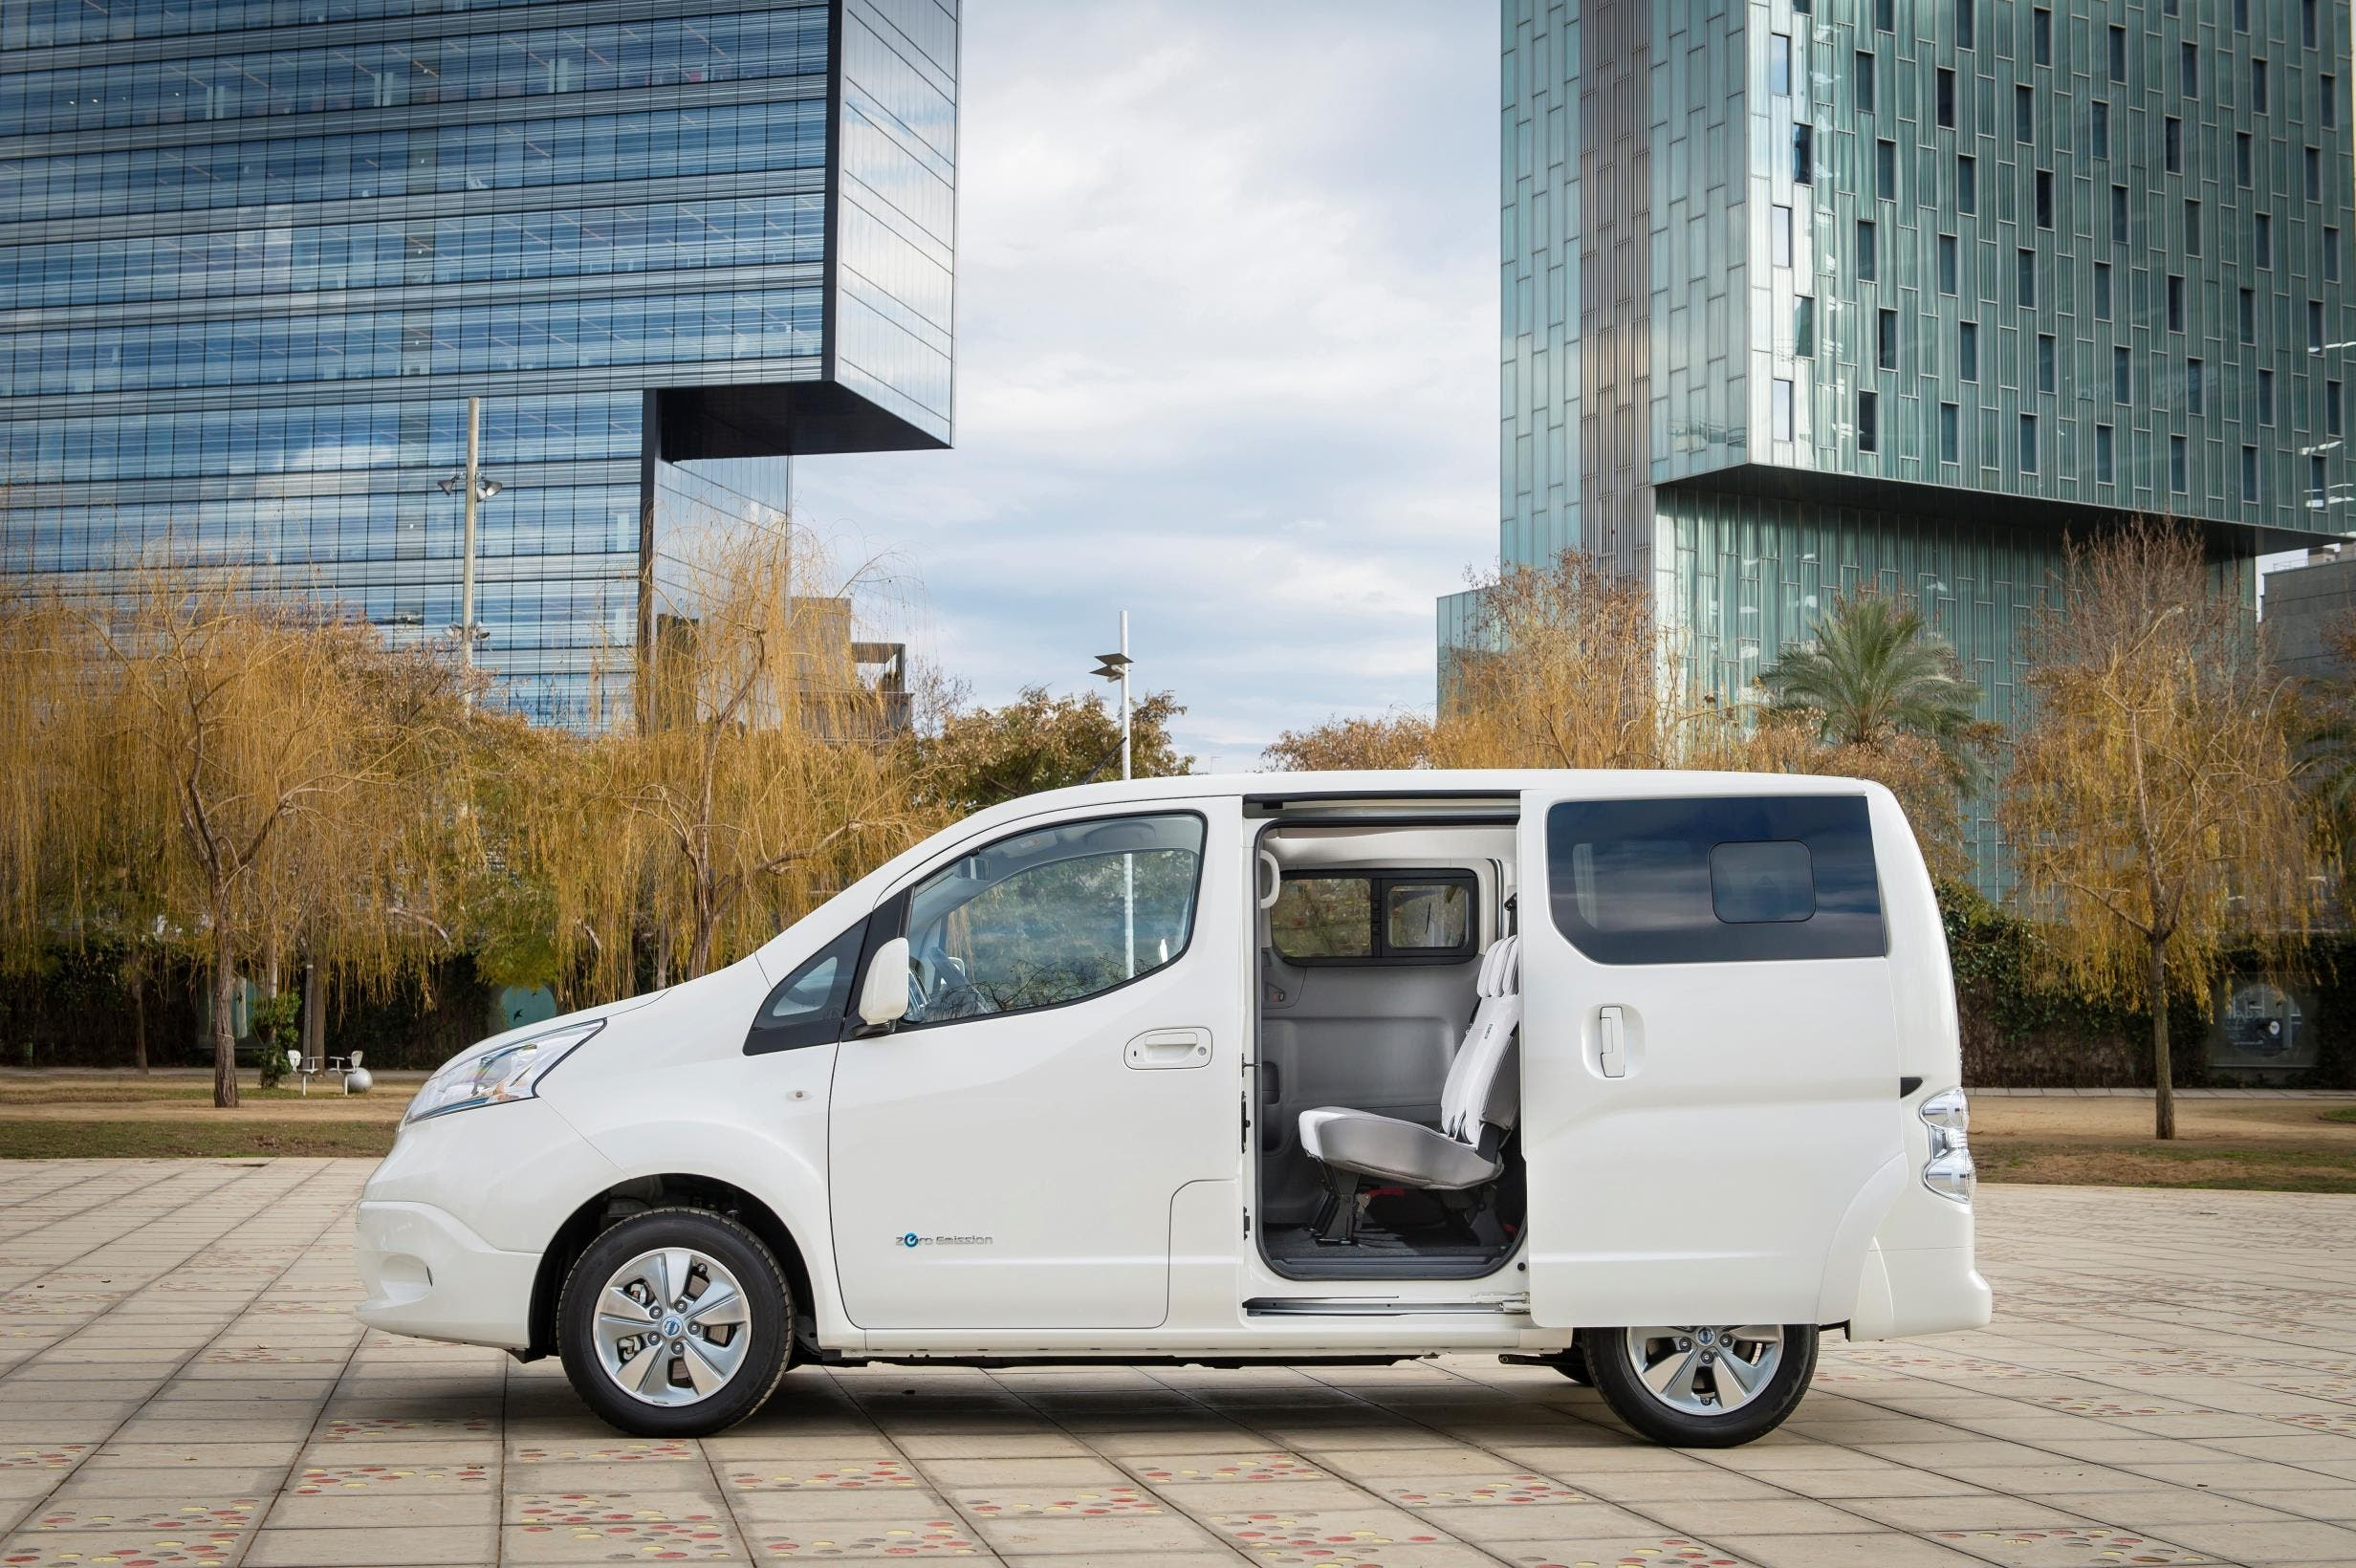 Nissan Now Taking Orders For Refreshed e-NV200 Electric Van — 40 kWh Battery Pack & Power Plug System Now Standard